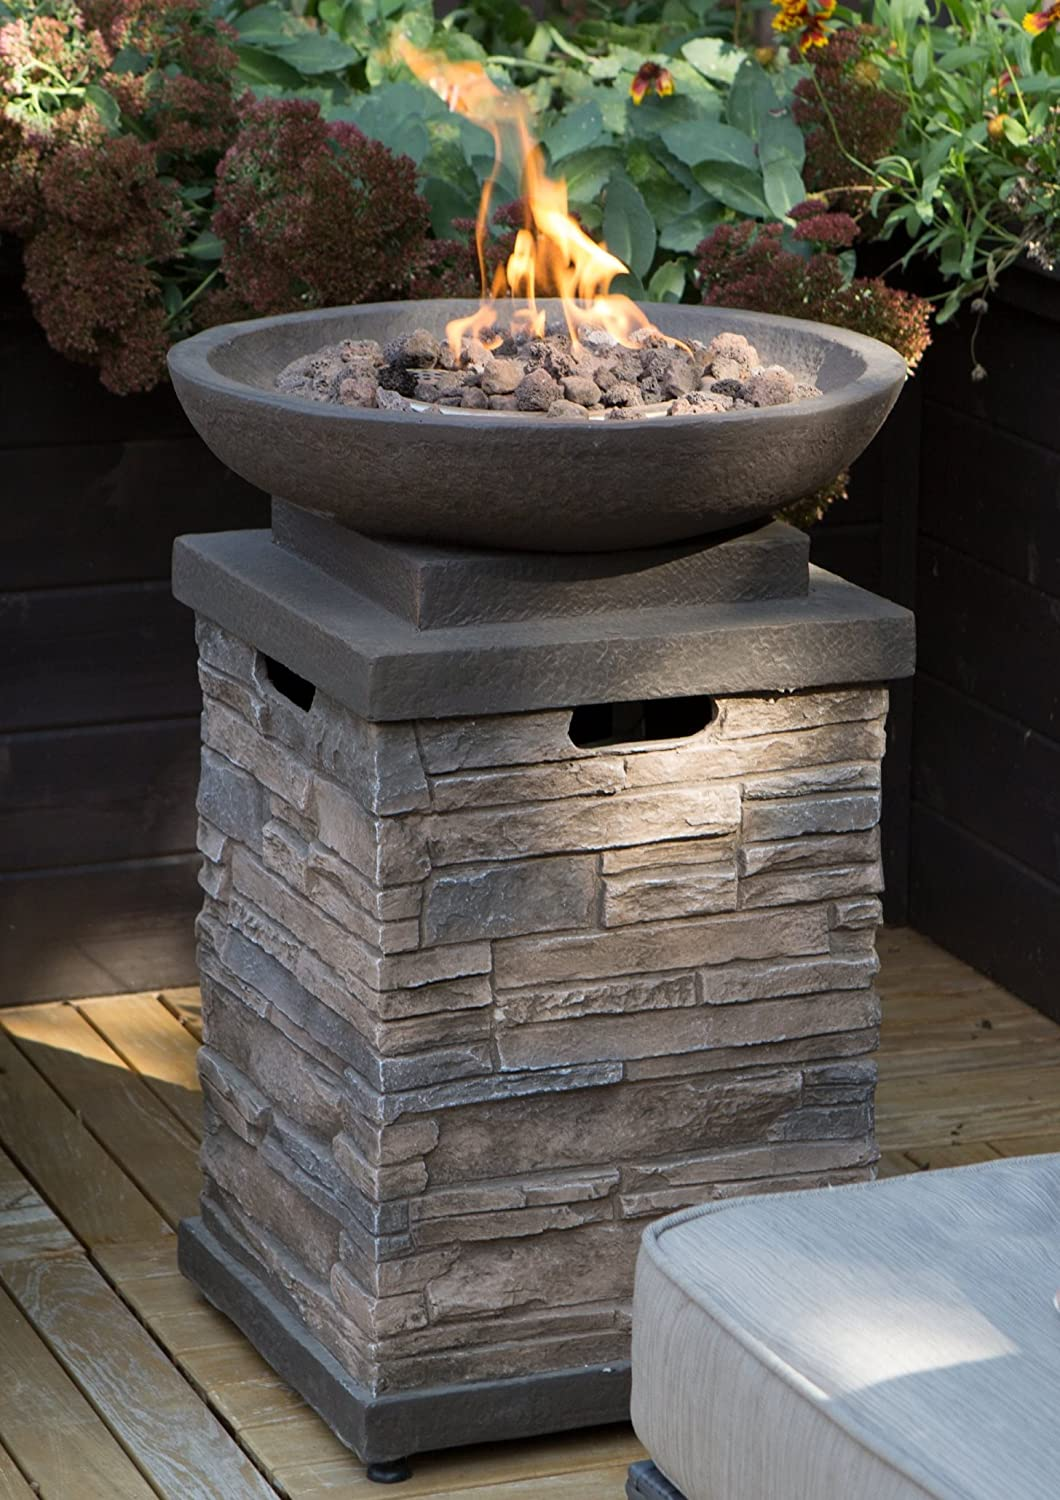 Realistic Stone-like Outdoor Patio Fire Pit Bowl with Free Cover. Get Ready for Entertainment in Your Backyard or Deck. This 30,000 BTU Propane Firepit Bowl Has Hideaway Storage for a 20lb Propane Tank and Also Comes with Clean Burning Lava Rocks